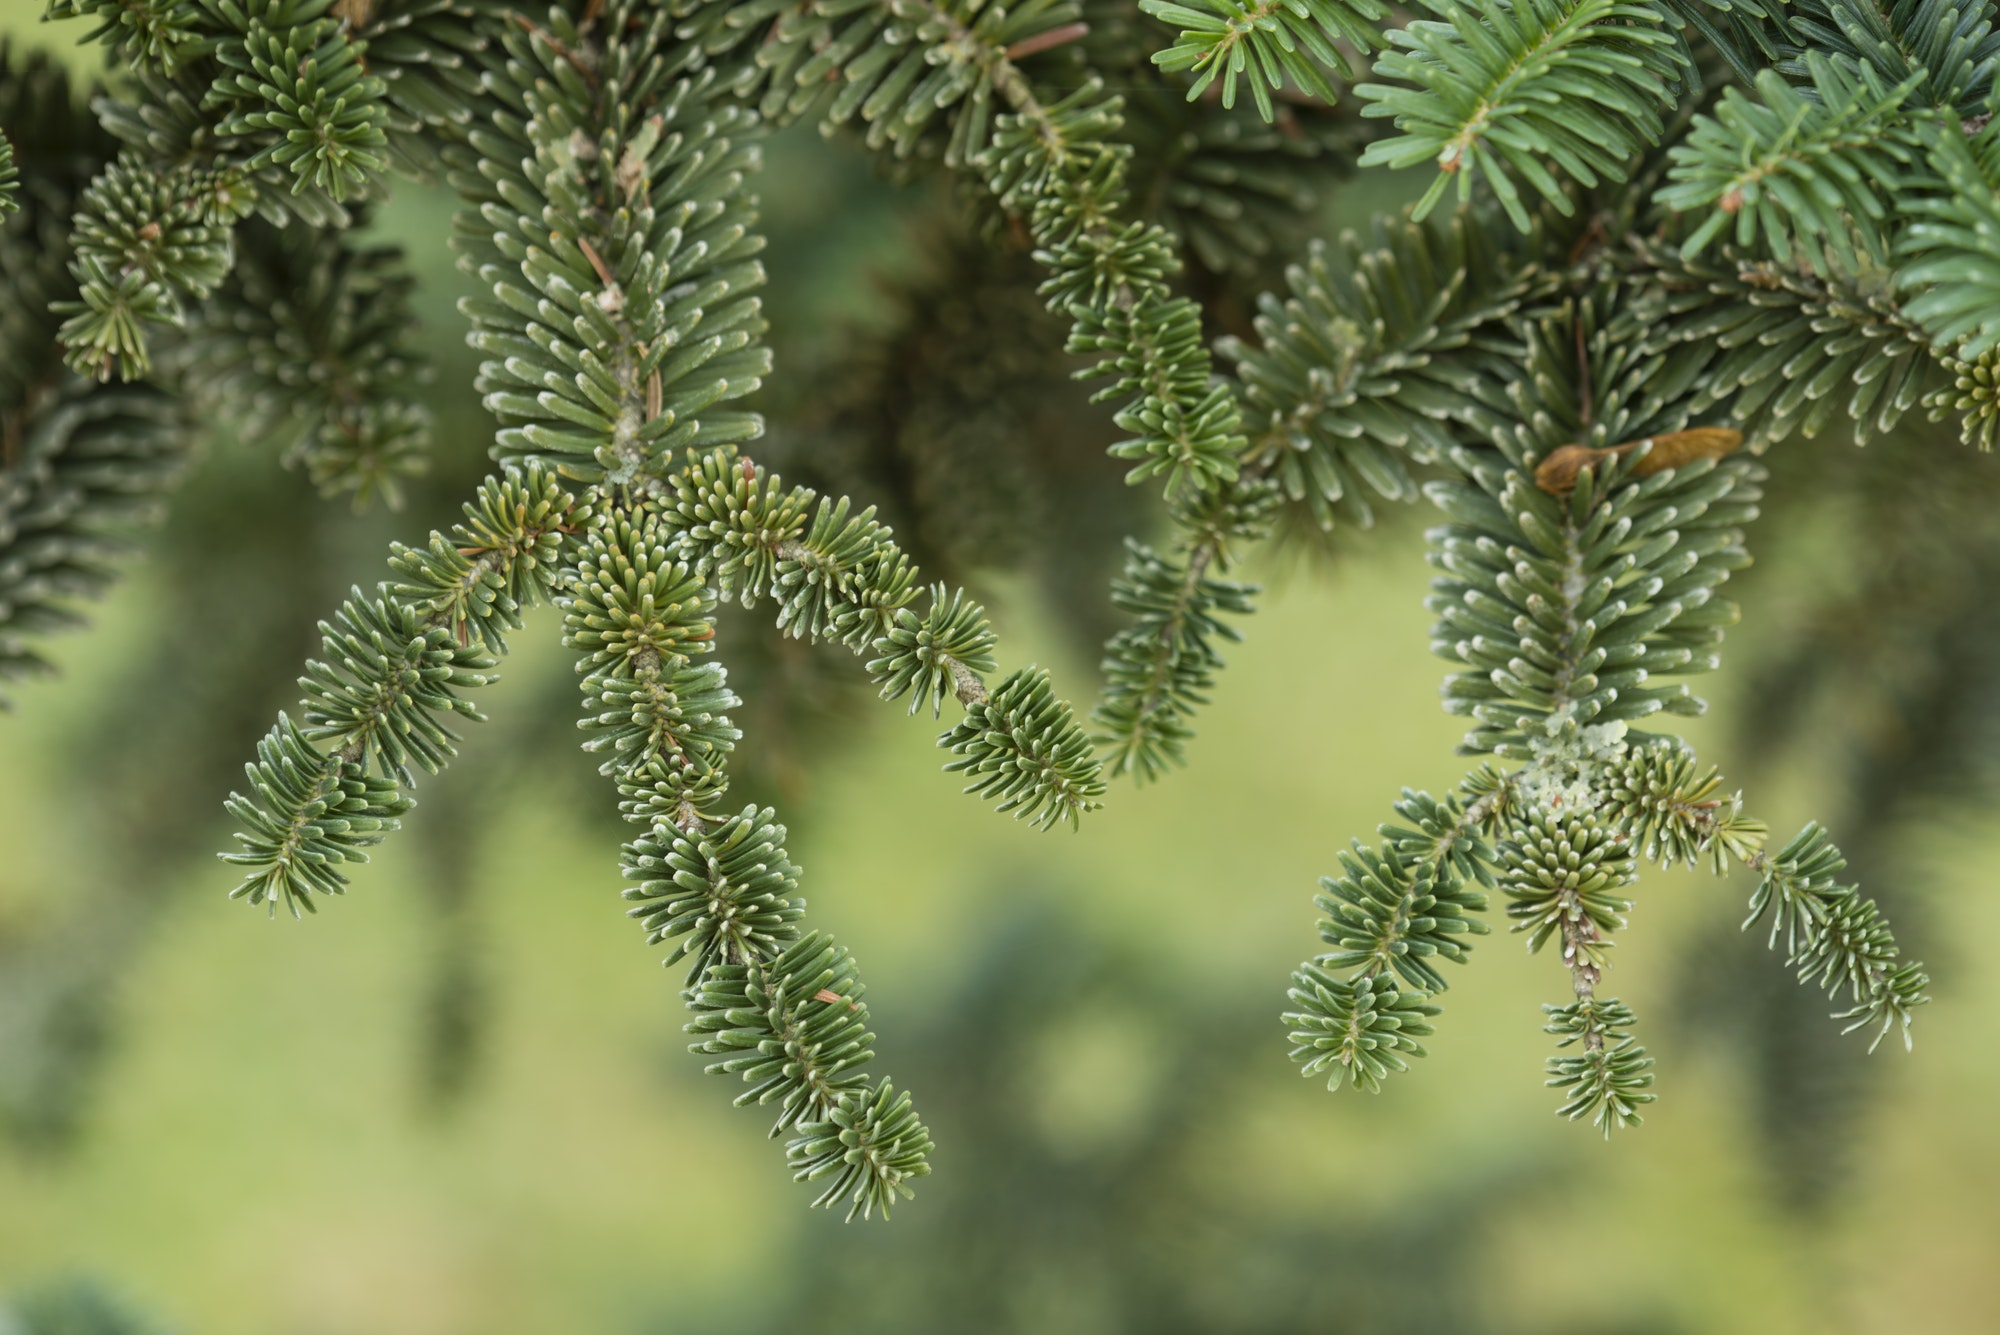 Norway spruce tree detail